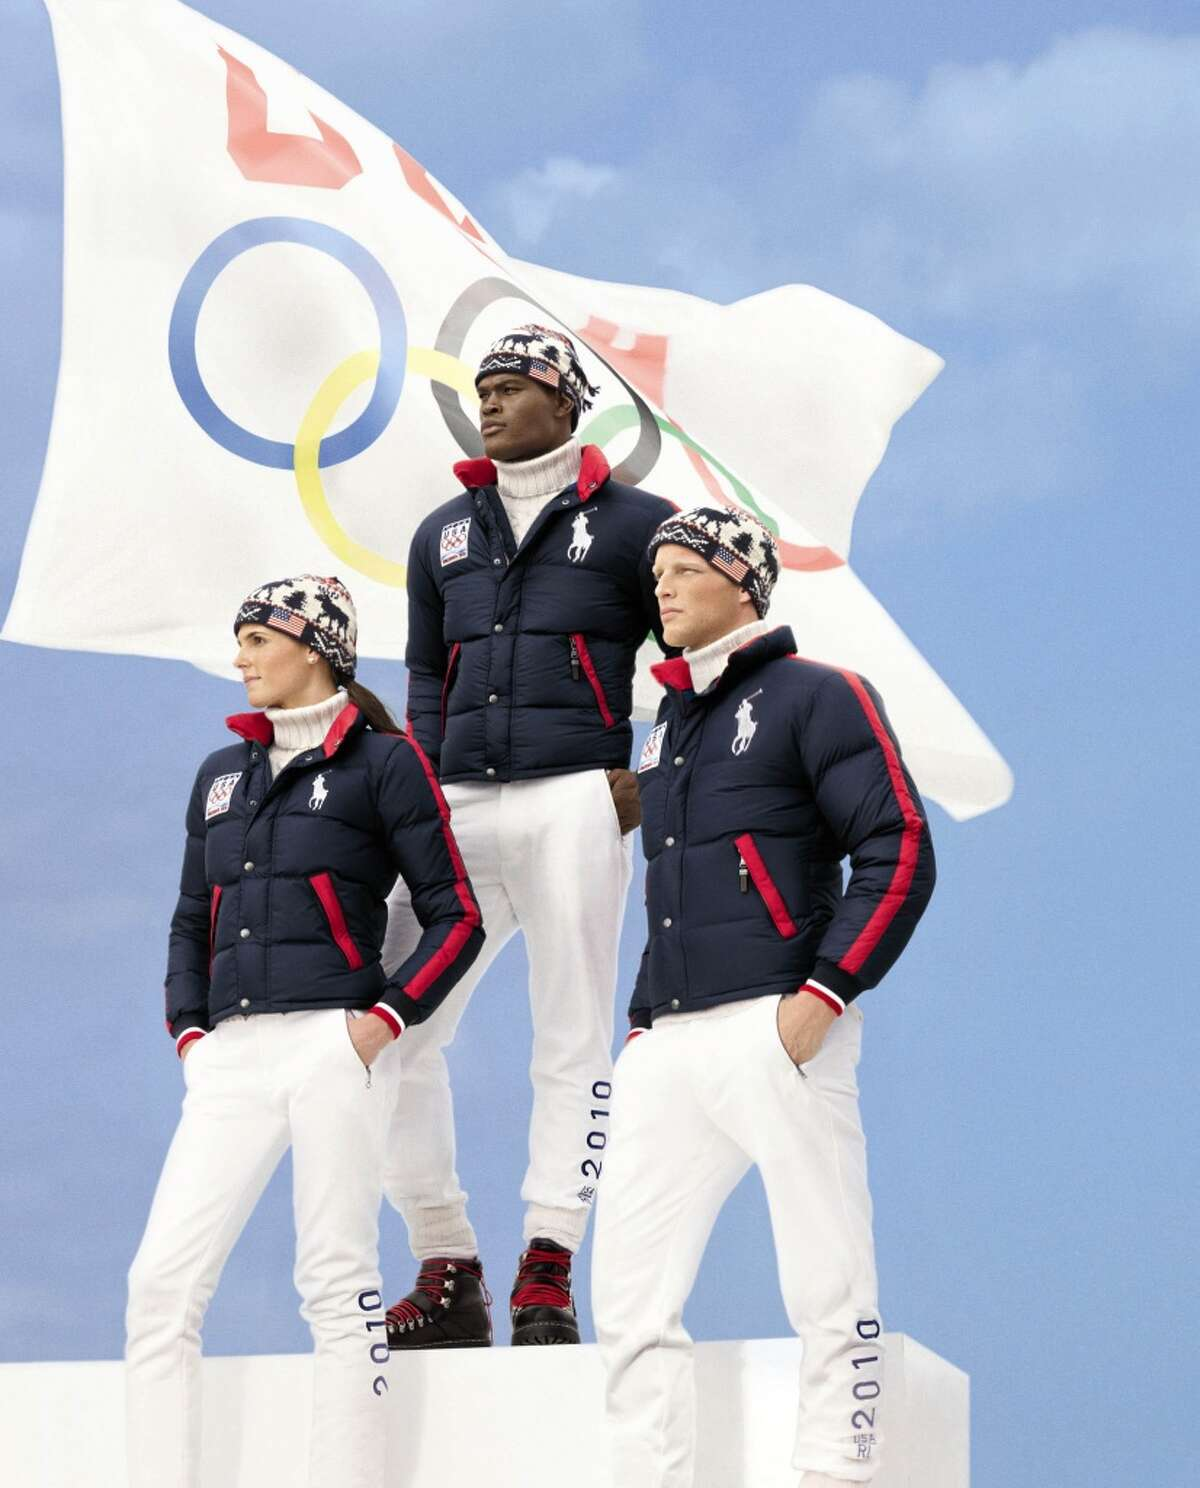 This photo released by Ralph Lauren shows the outfits that the United States Olympic team will wear at the Opening ceremonies of the games in Vancouver, British Columbia.(AP Photo/Ralph Lauren)